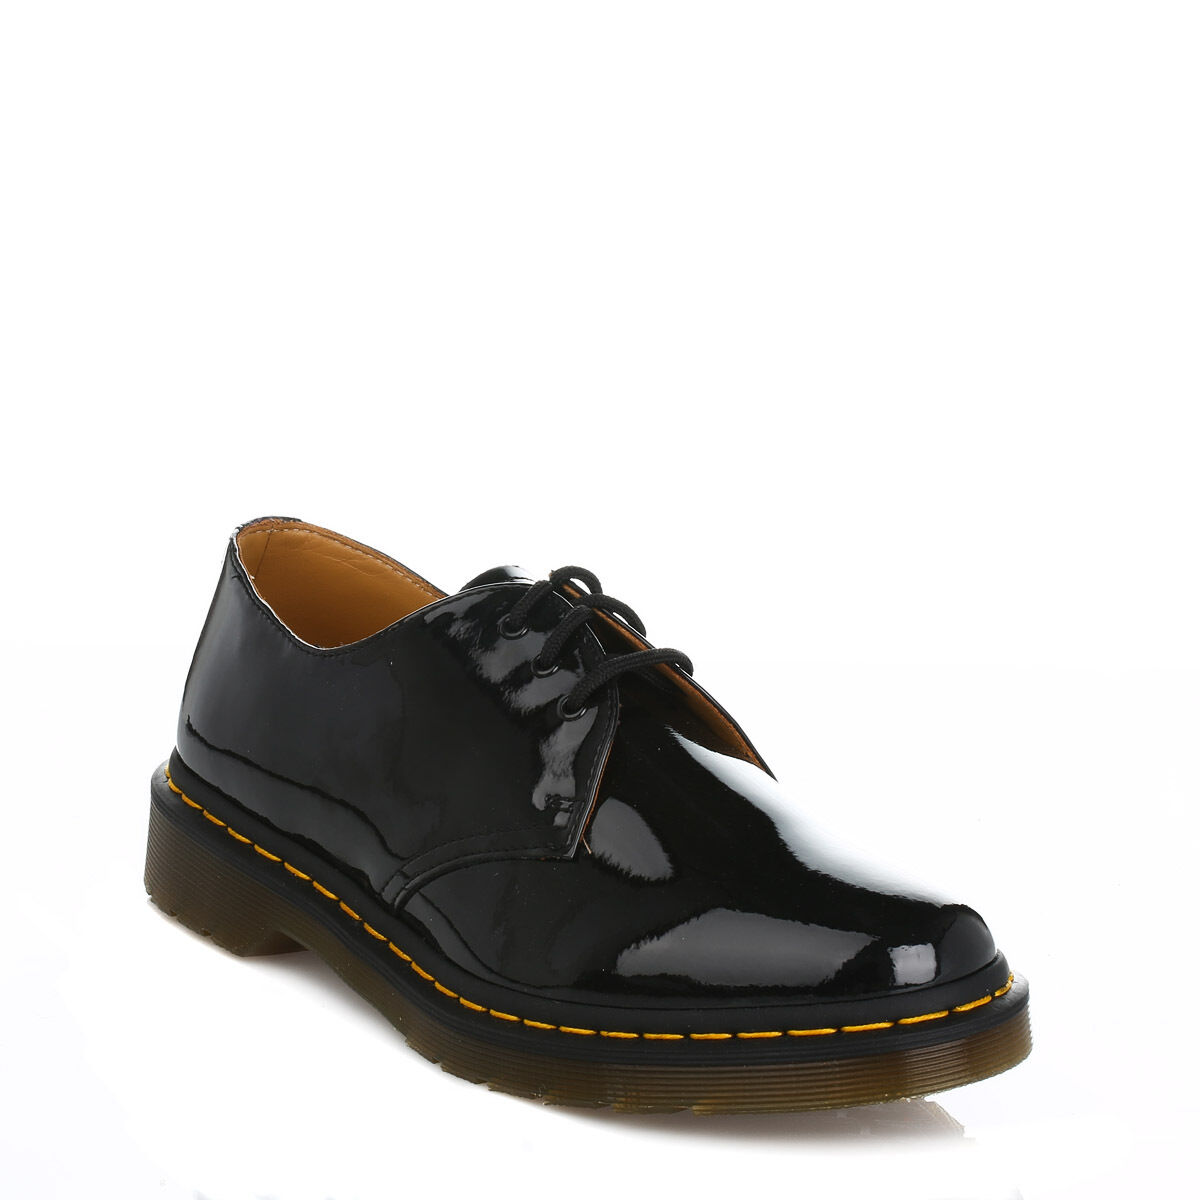 Dr. Martens Womens Black 1461 Derby Shoes, Lace Up, Patent Leather, Smart Docs